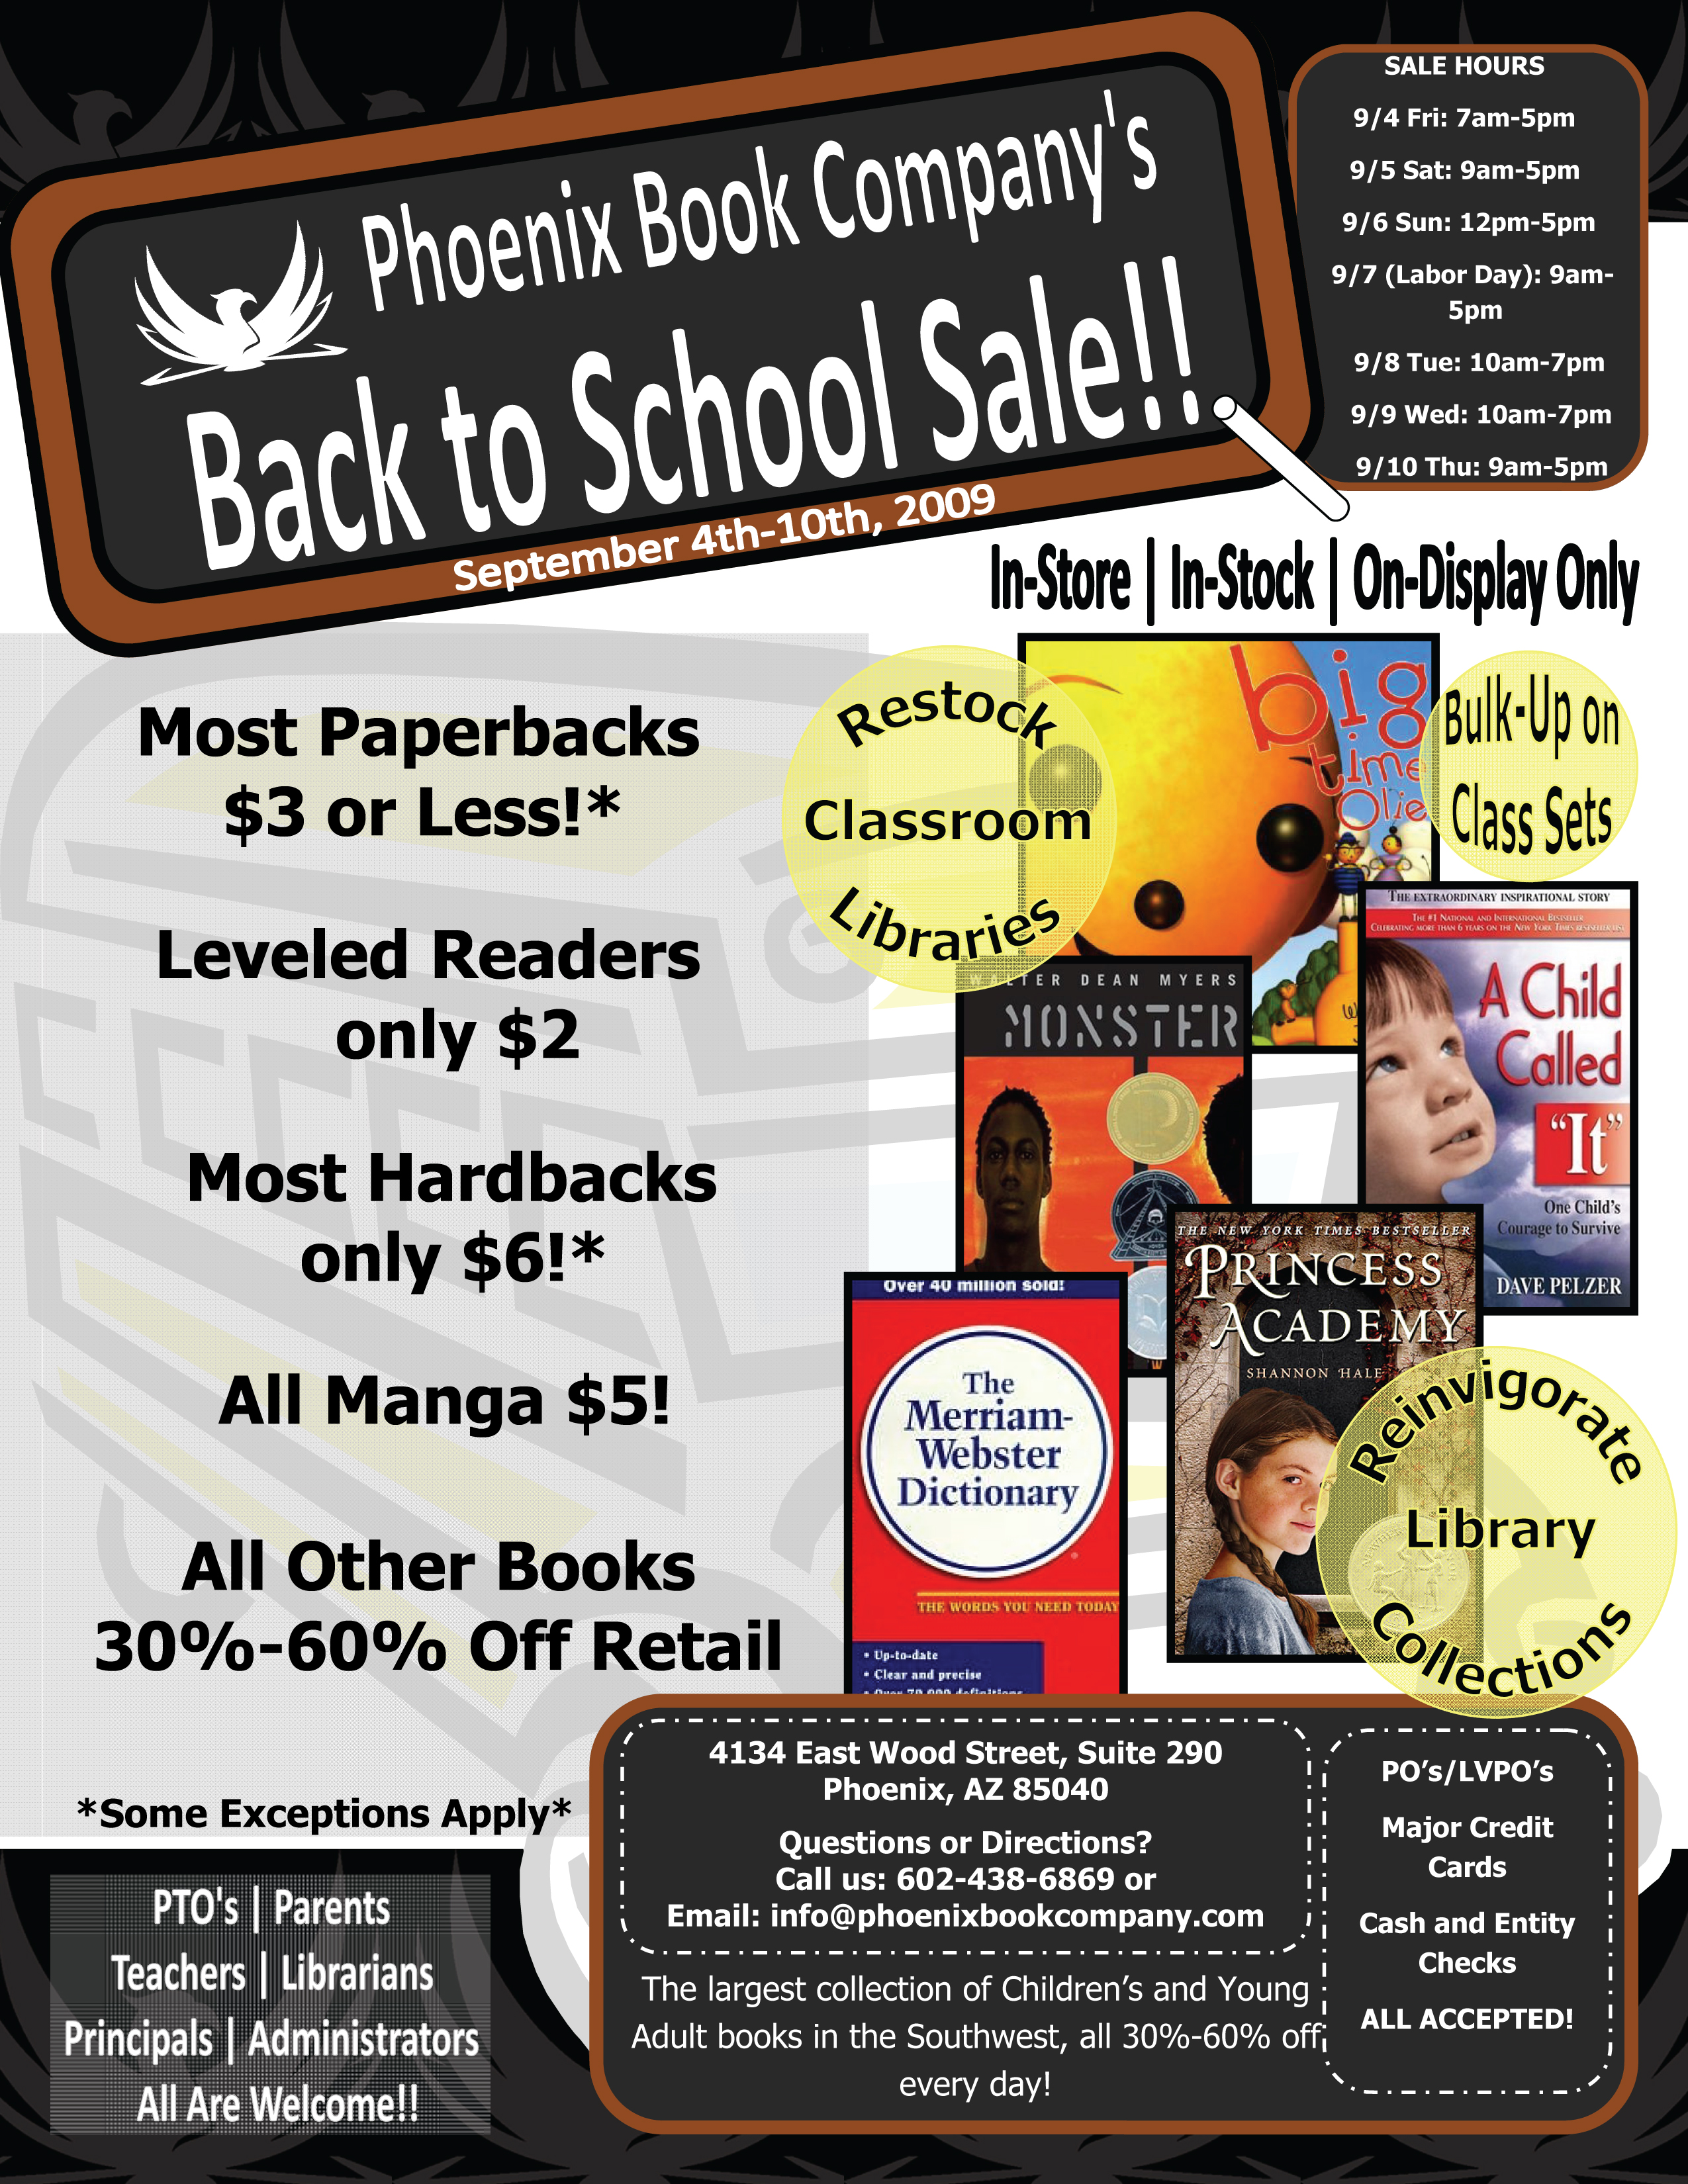 Back To School Sale at PBC